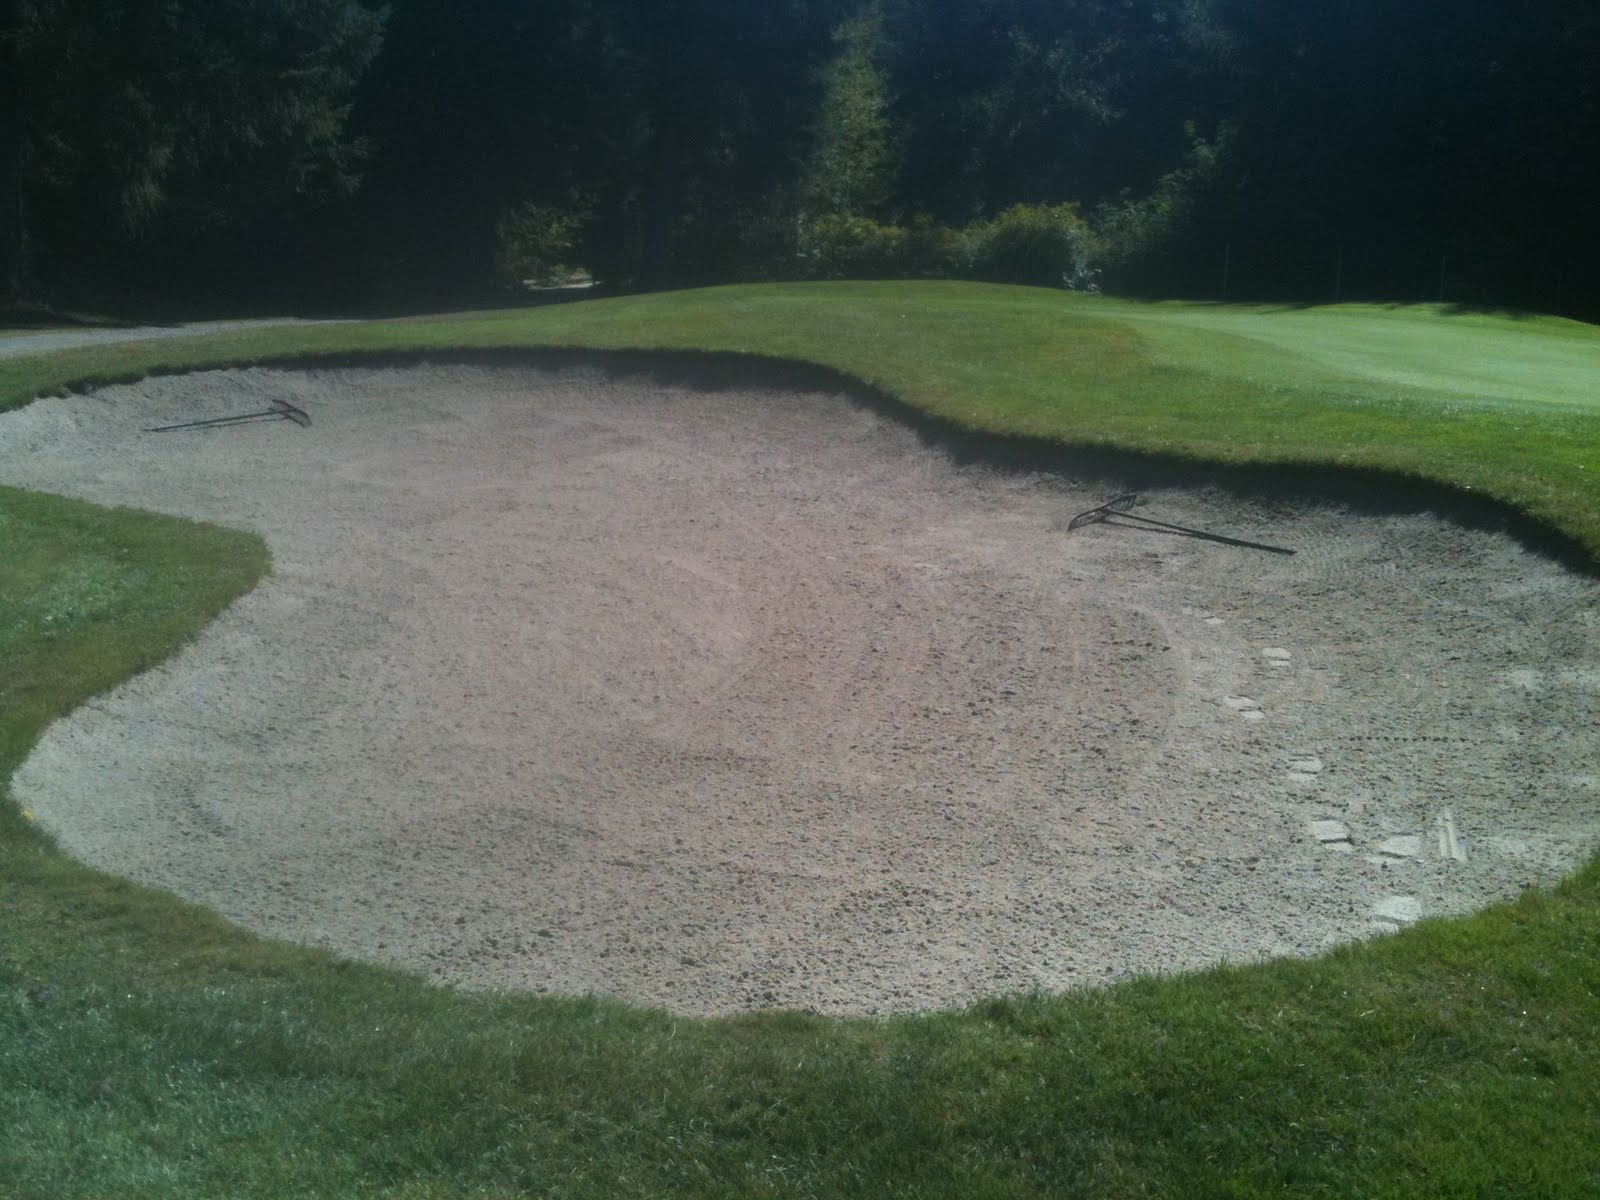 Turf hacker rethinking sand trap maintenance - Wand trap ...